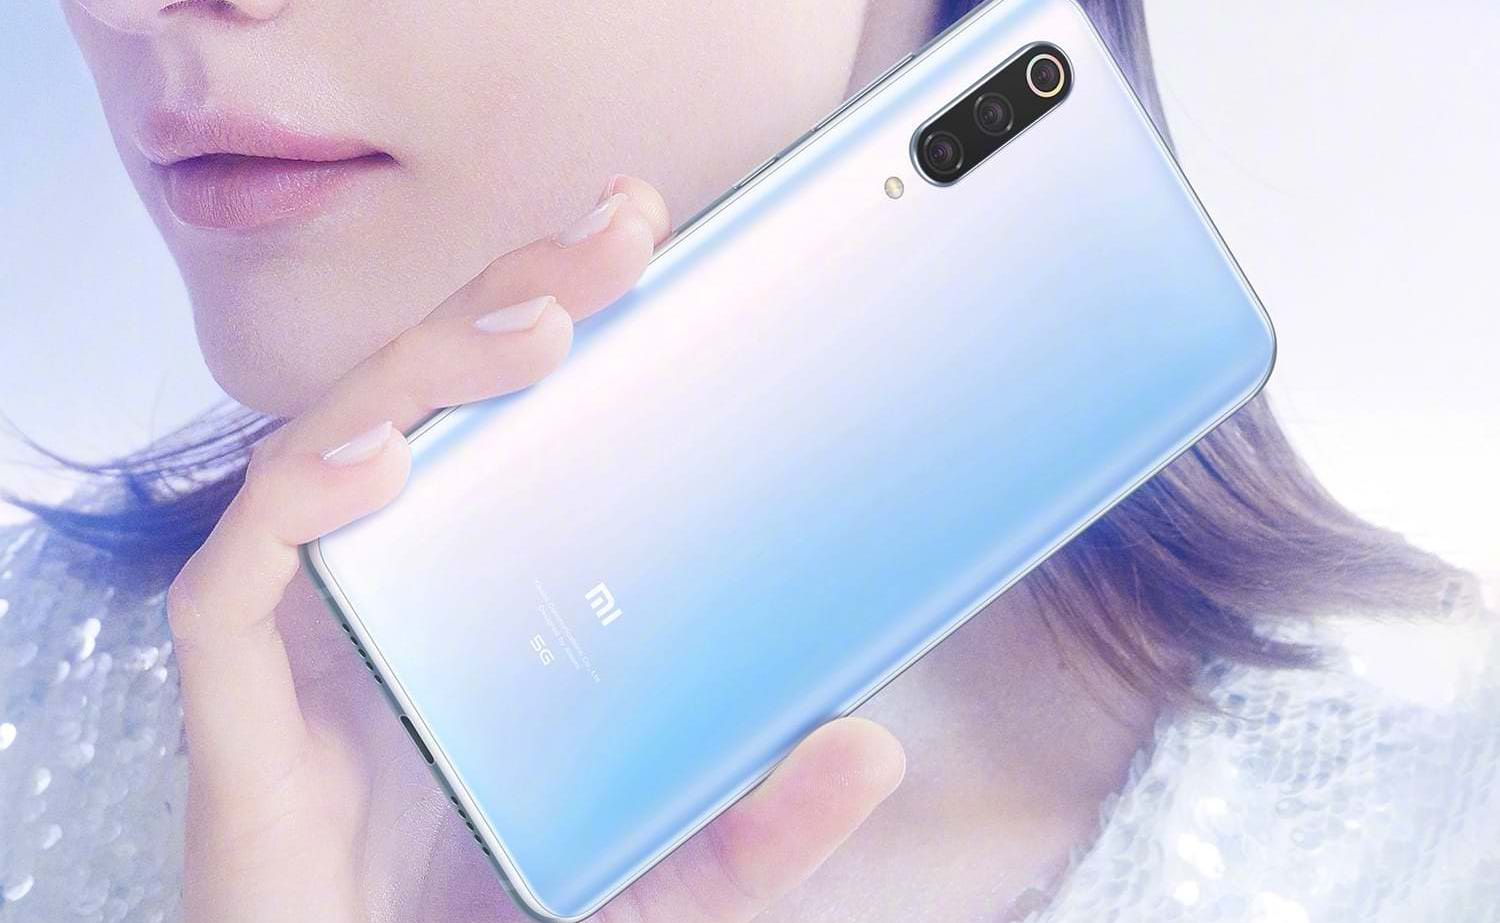 Xiaomi Mi 9 Pro 5G Fast-Charging Smartphone reaches full battery in just 48 minutes